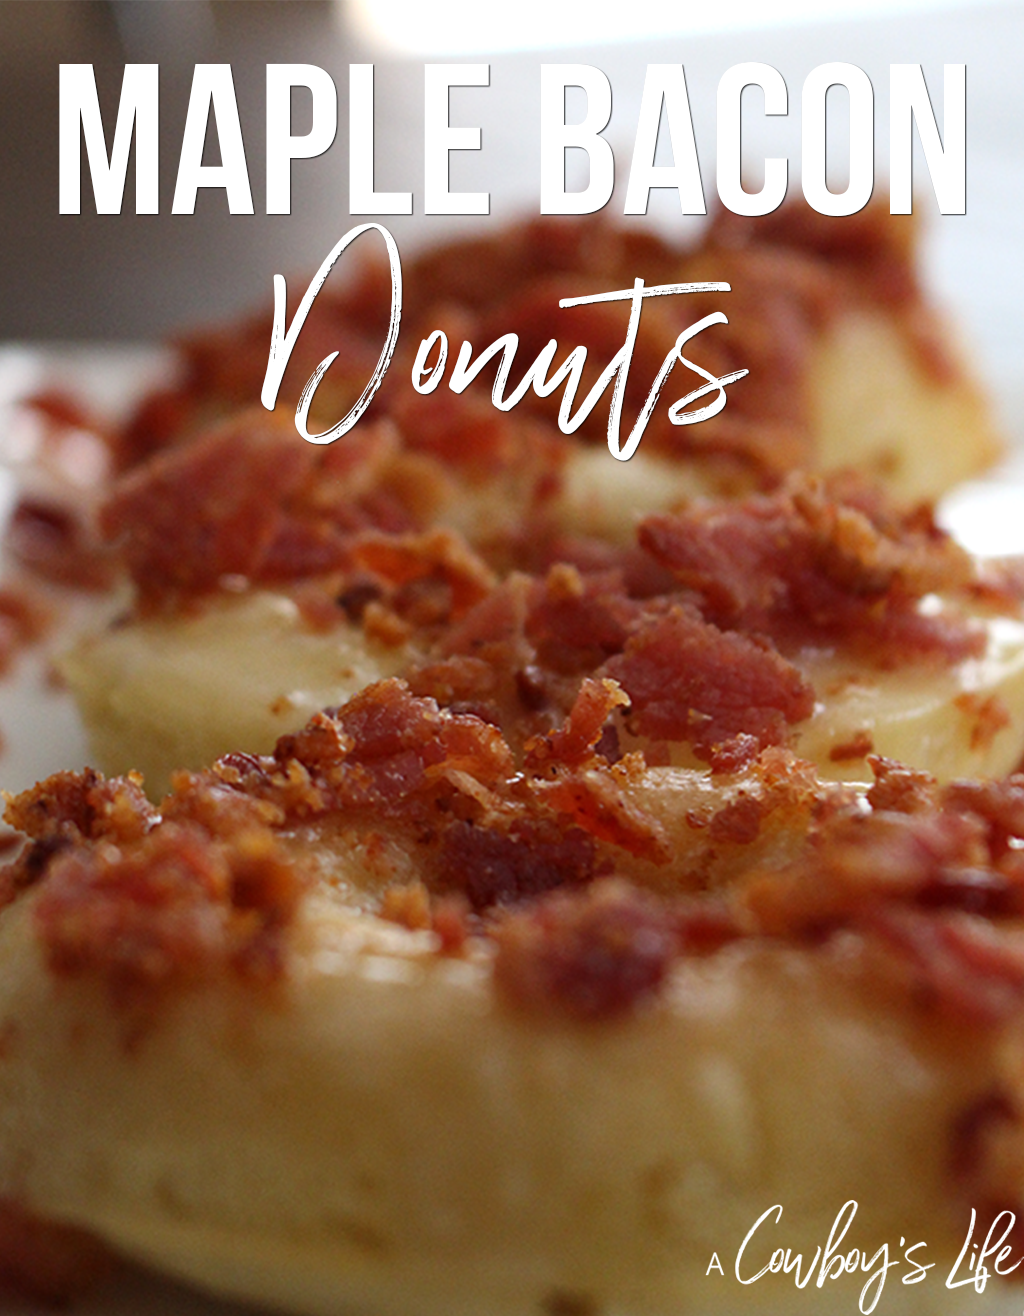 How to make Maple Bacon Donuts